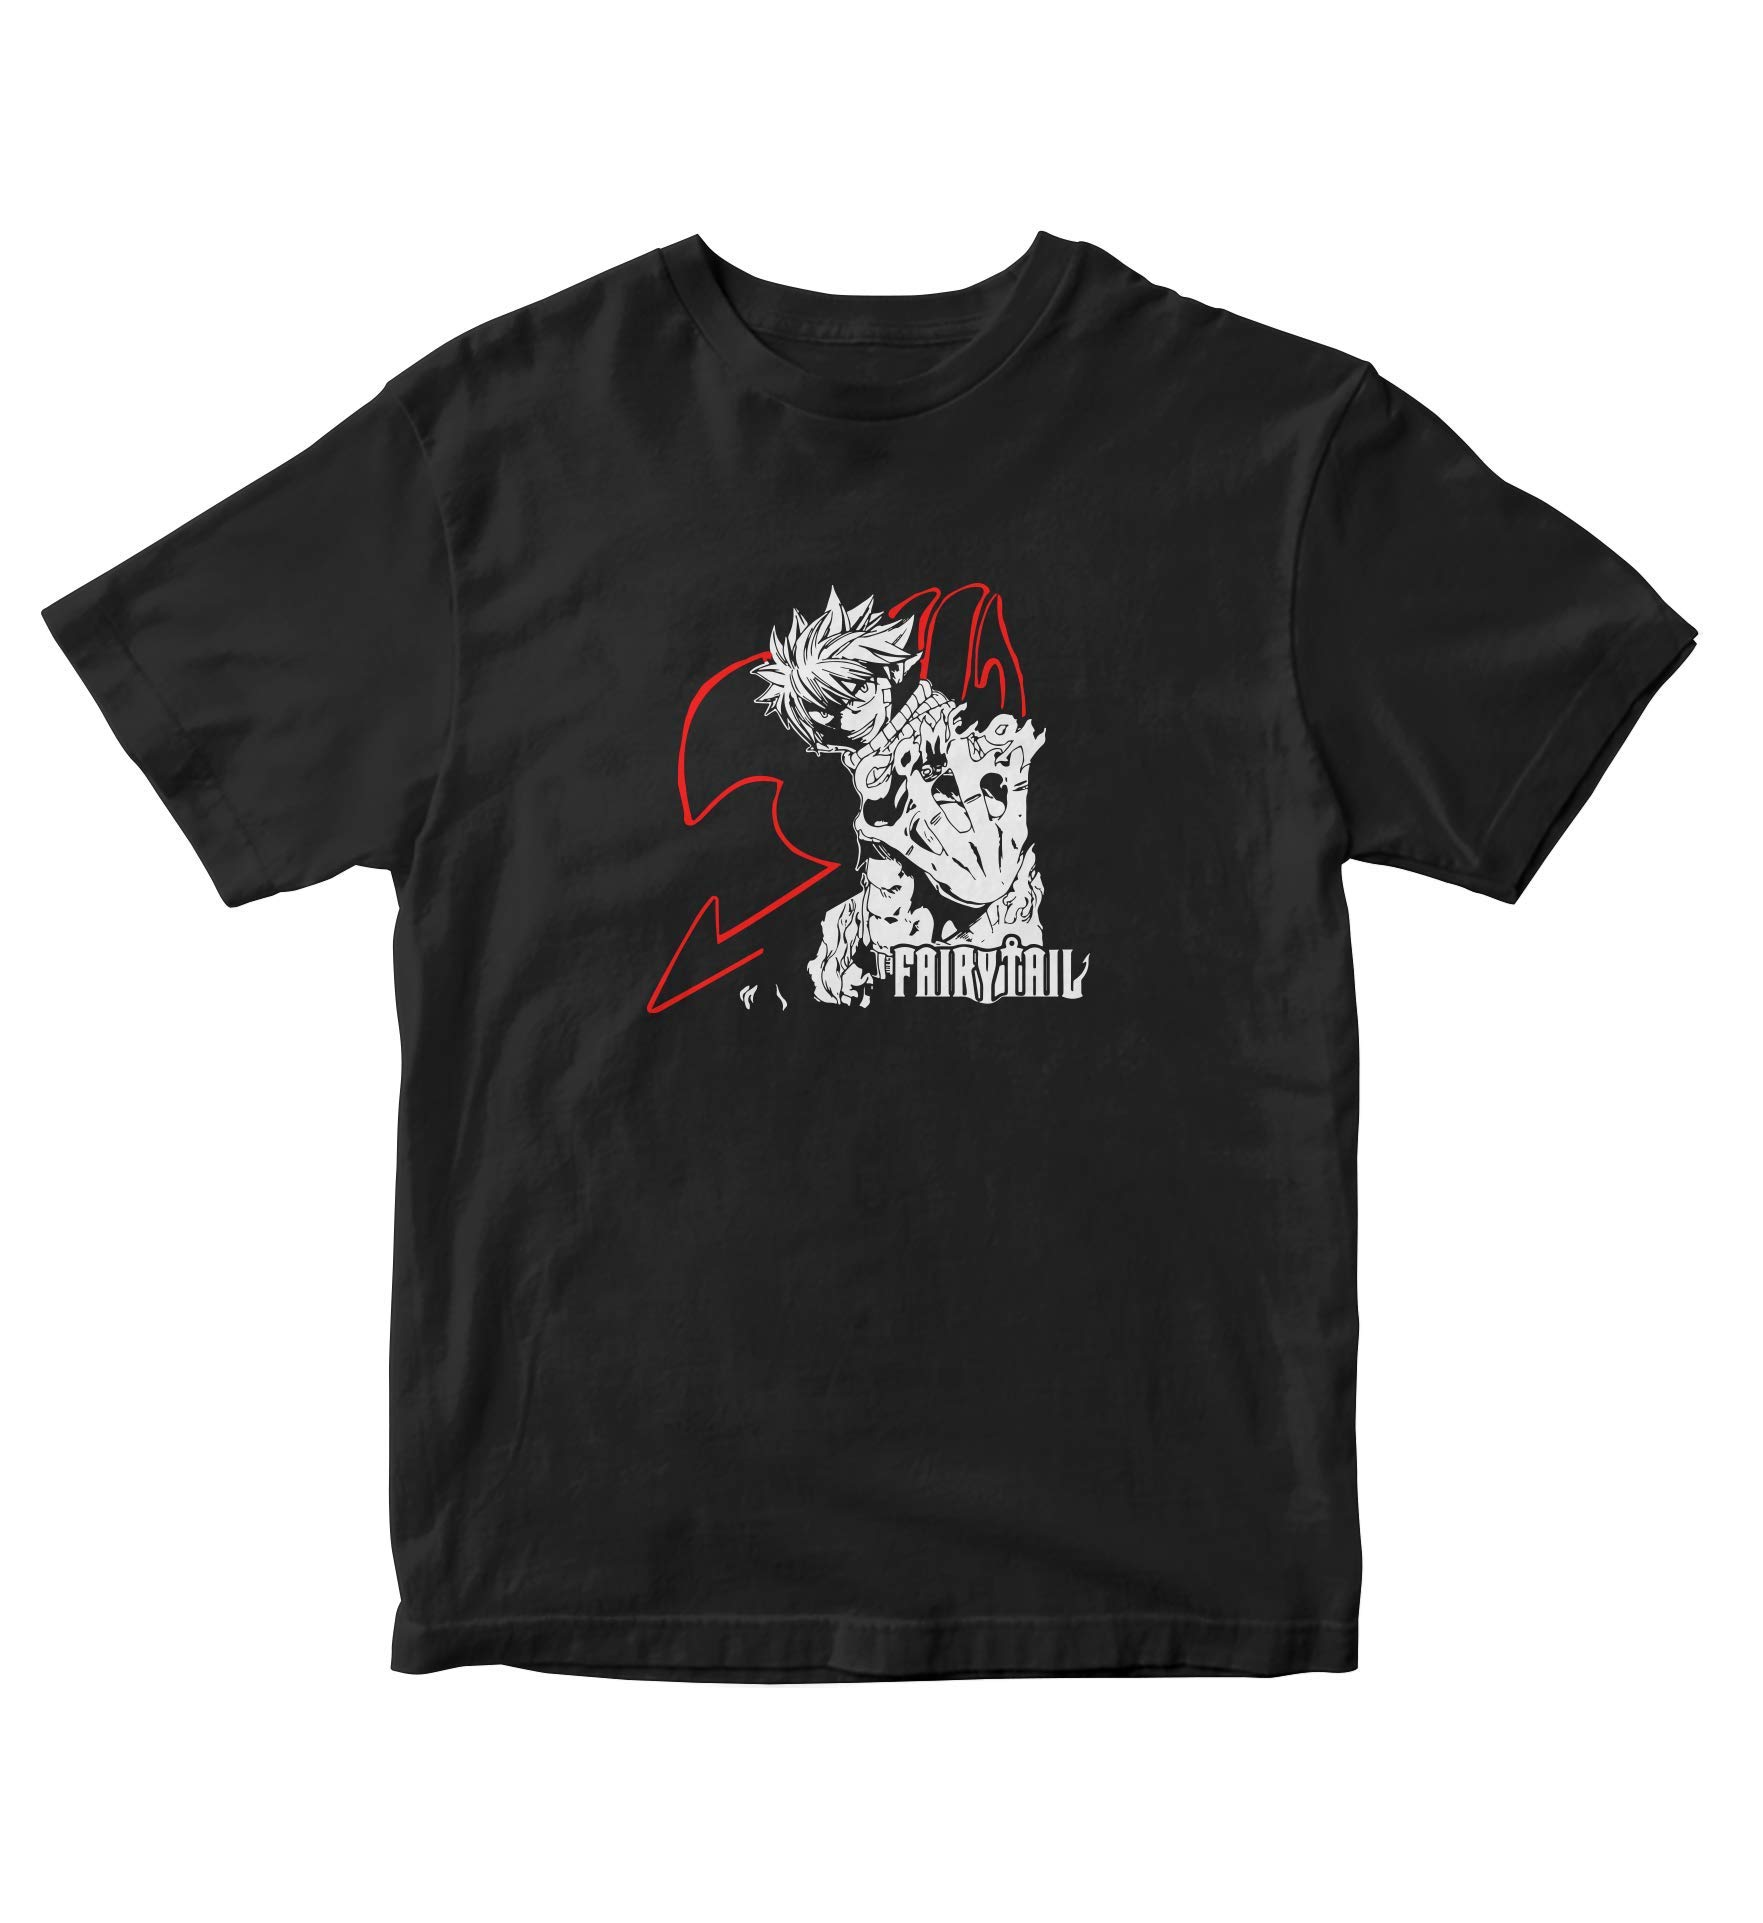 Come On Natsu Dragneel Fairy Tail T Shirt Adult S Anime Manga A676